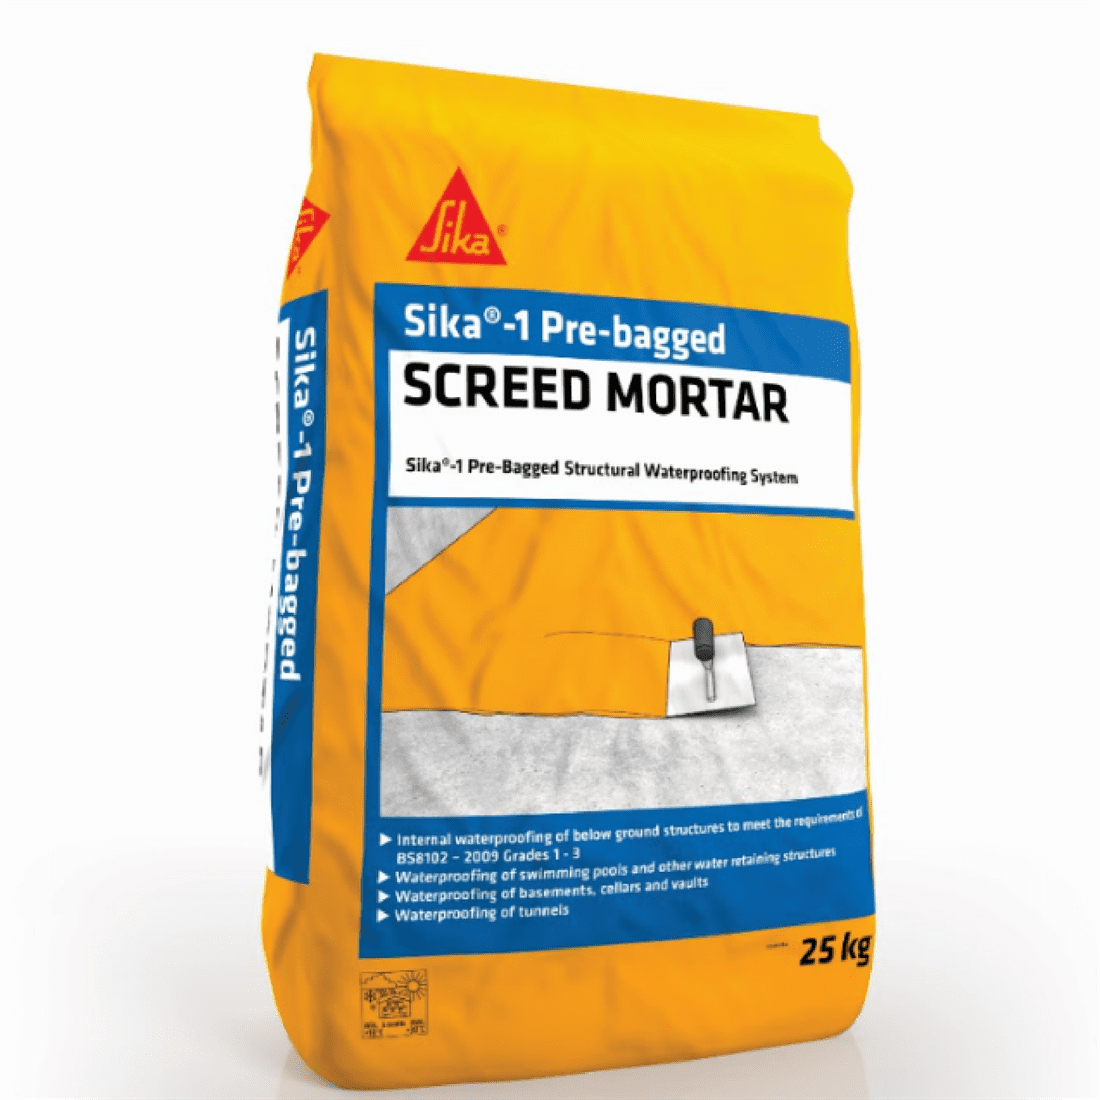 Sika-1 Pre-Bagged Screed Mortar - Free Next Day Express Delivery